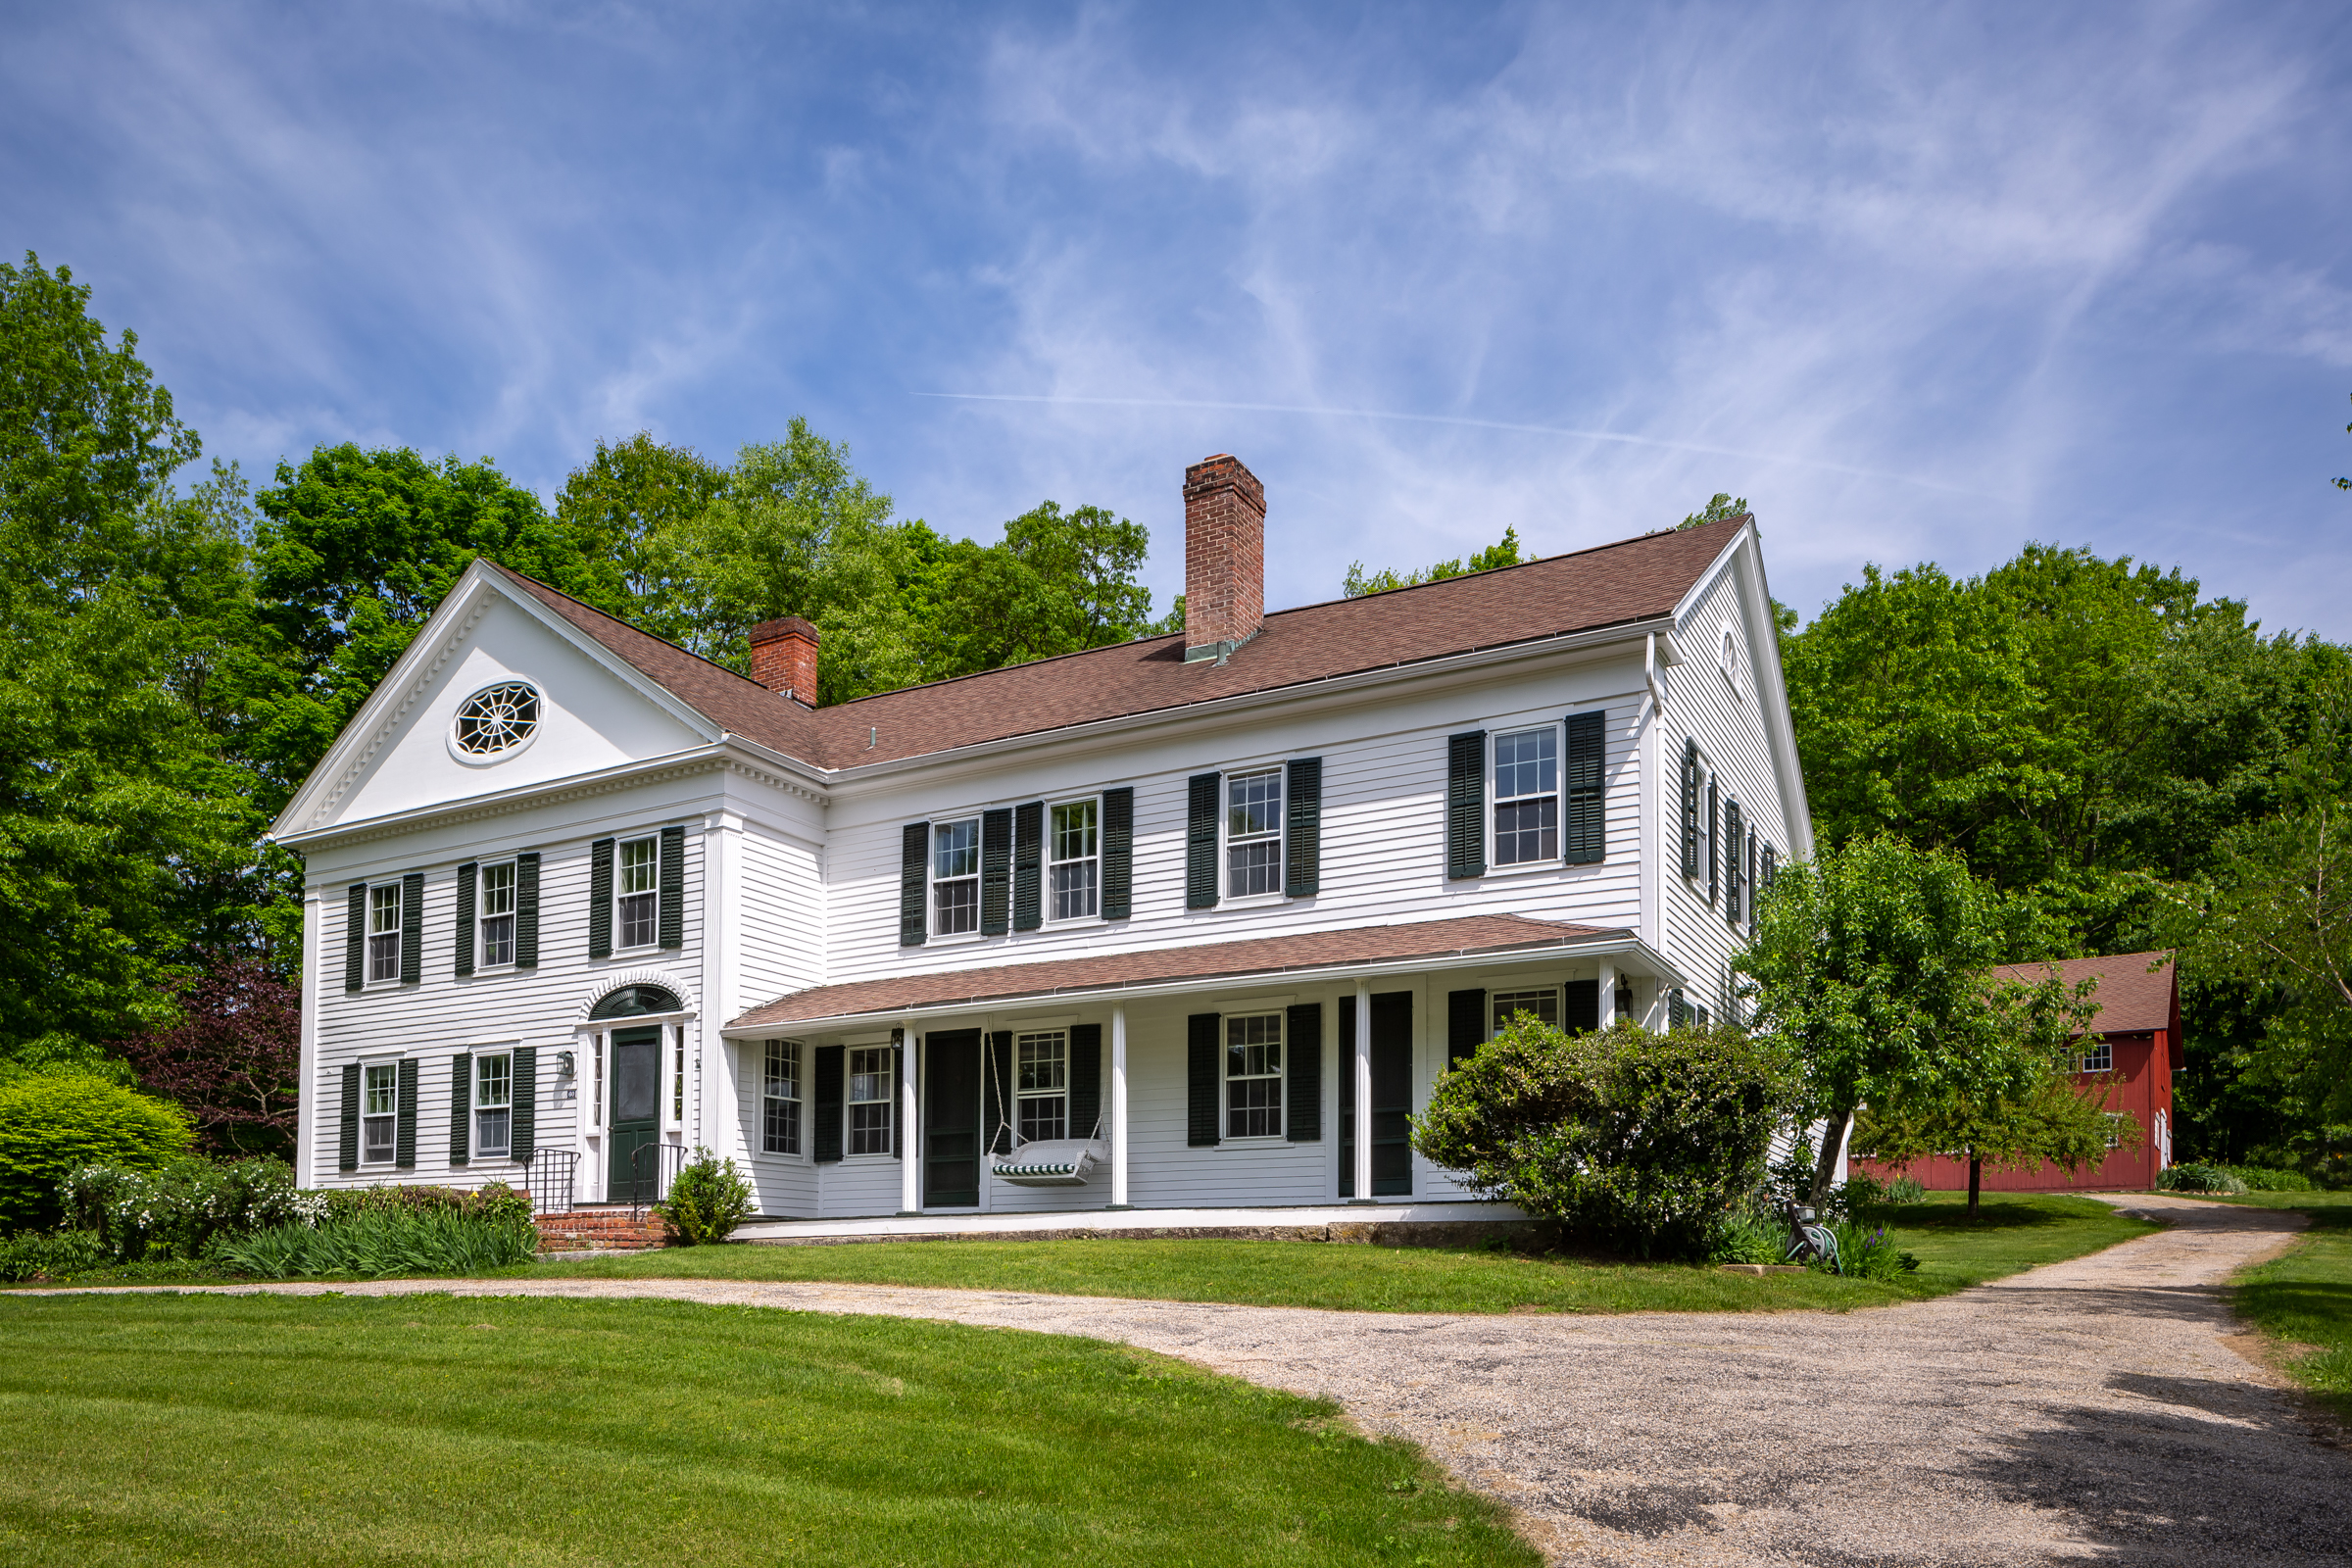 Casa unifamiliar en venta en/de 60 Furnace Brook Road, Cornwall, Connecticut ,06754  , EUA